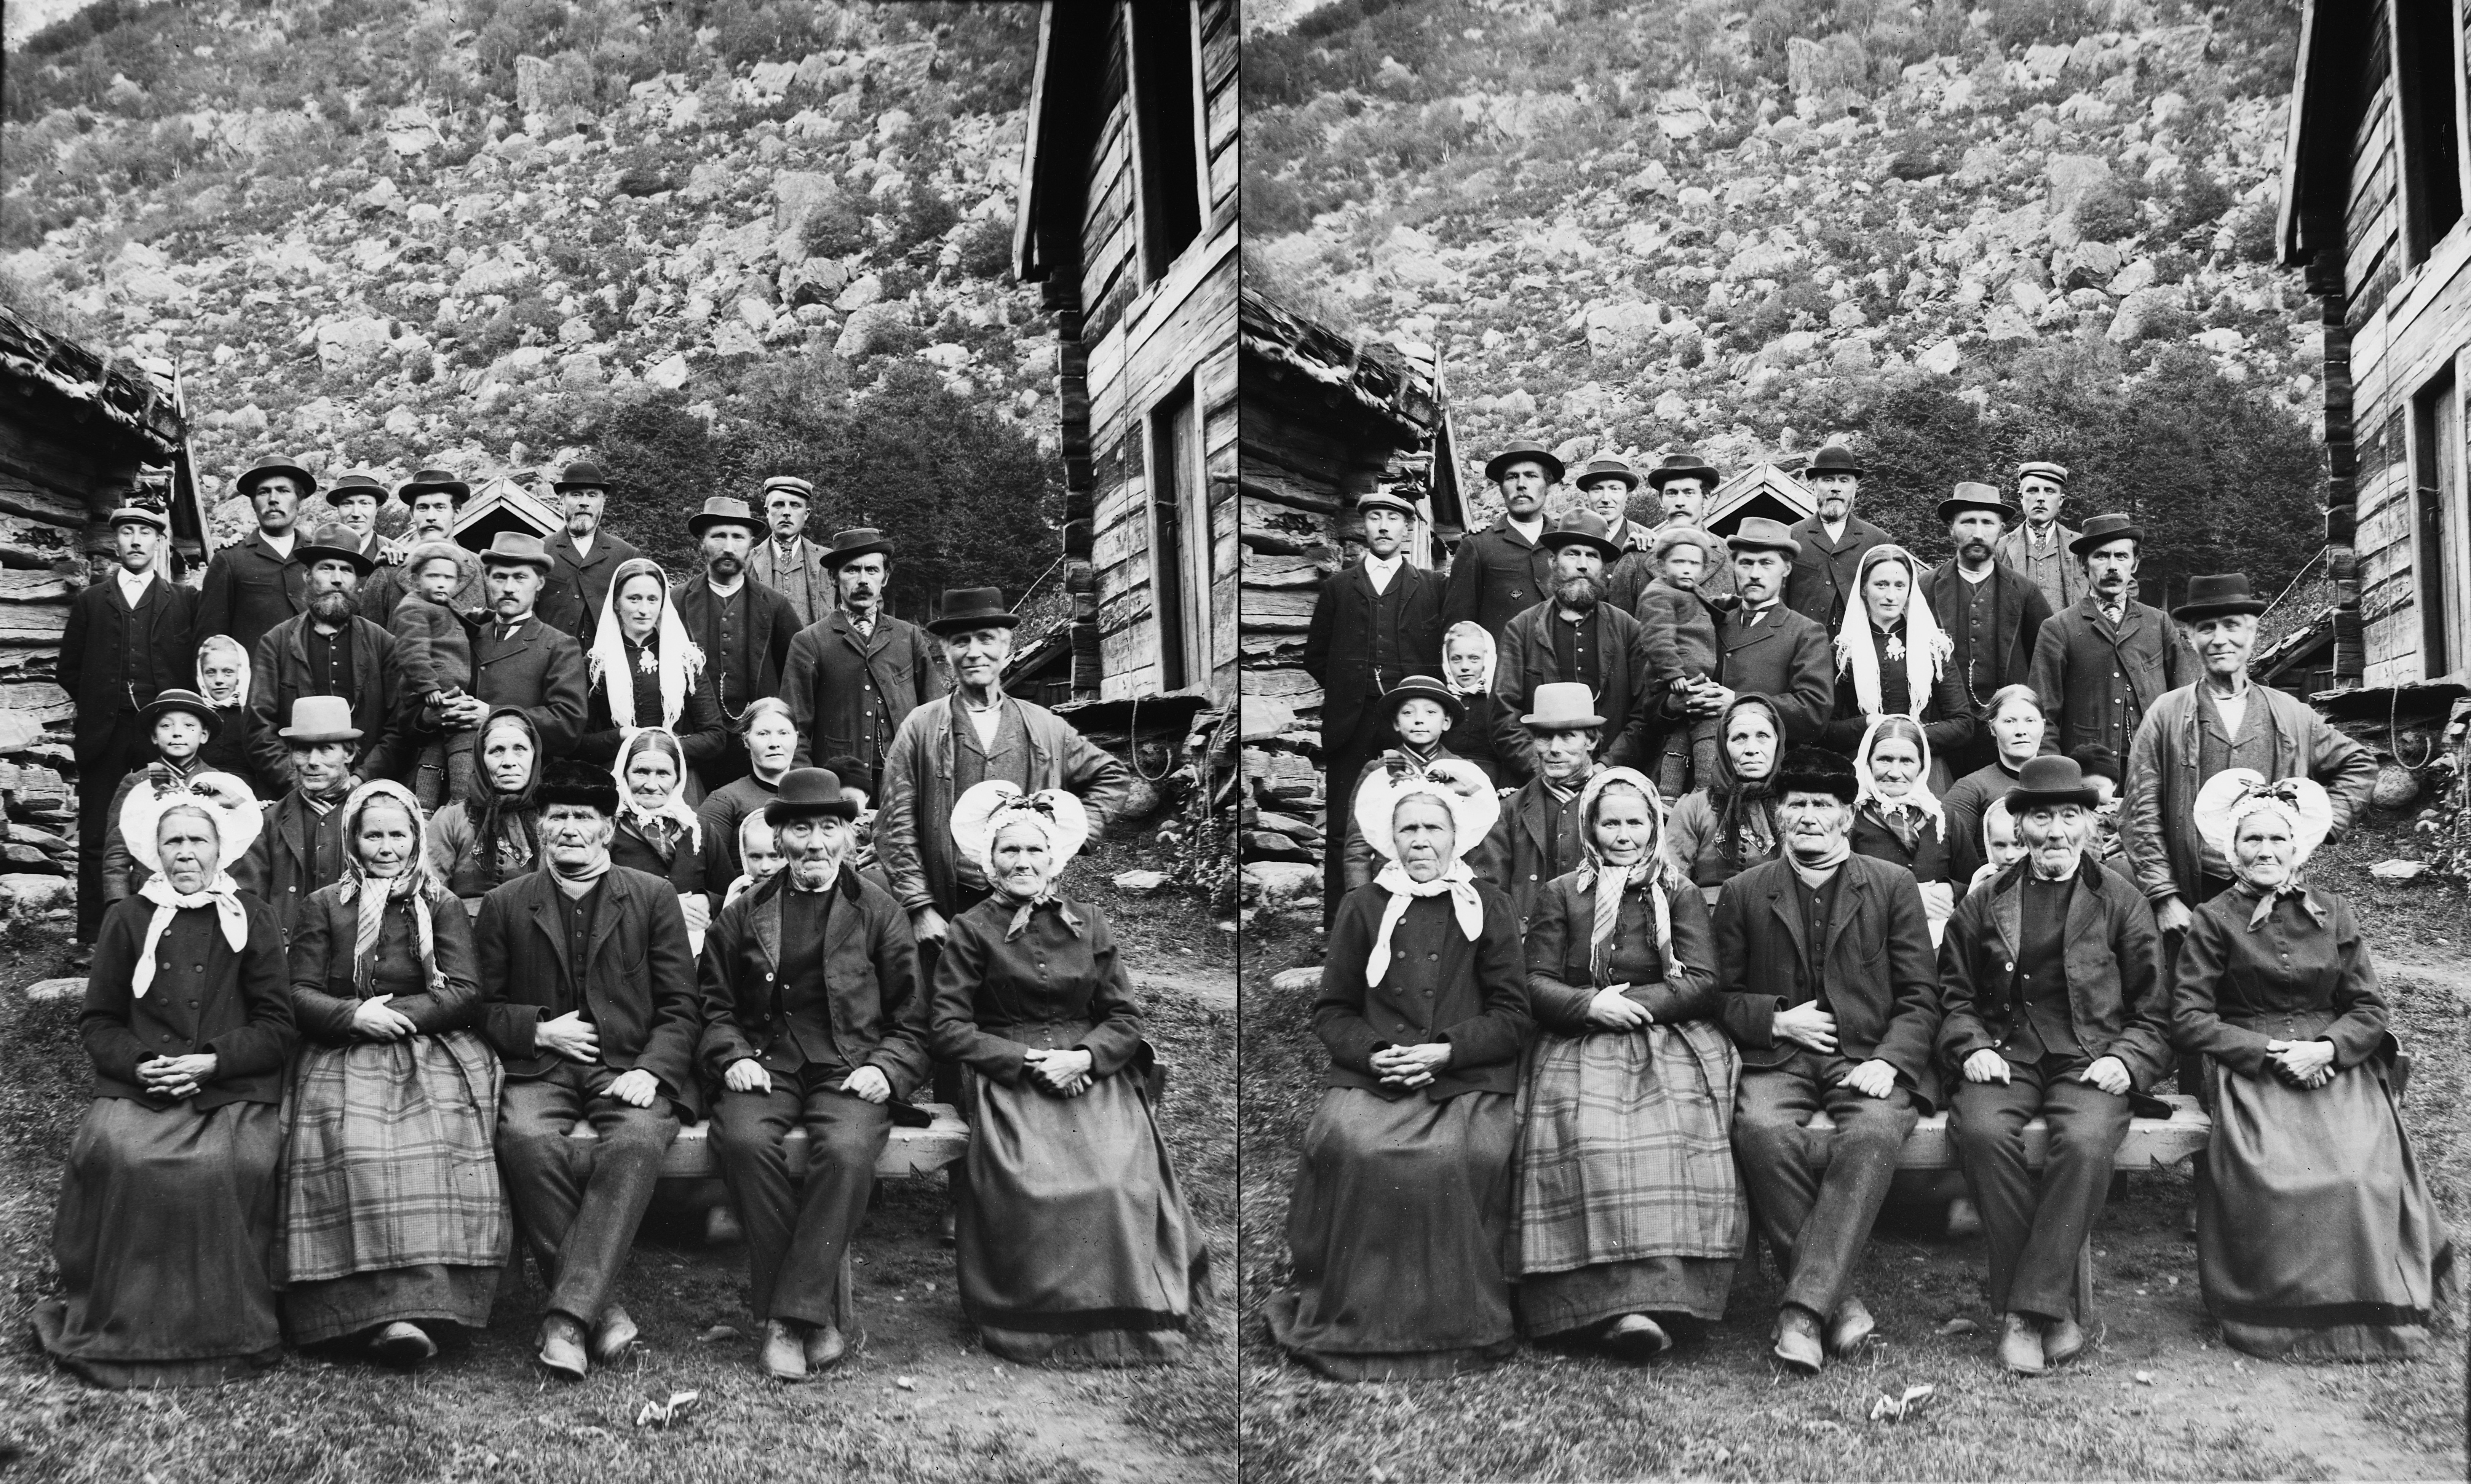 life in the early 1900s in north america Immigration in the early 1900s printer friendly version  after the depression of the 1890s, immigration jumped from a low of 35 million in that decade to a high of 9 million in the first decade of the new century.